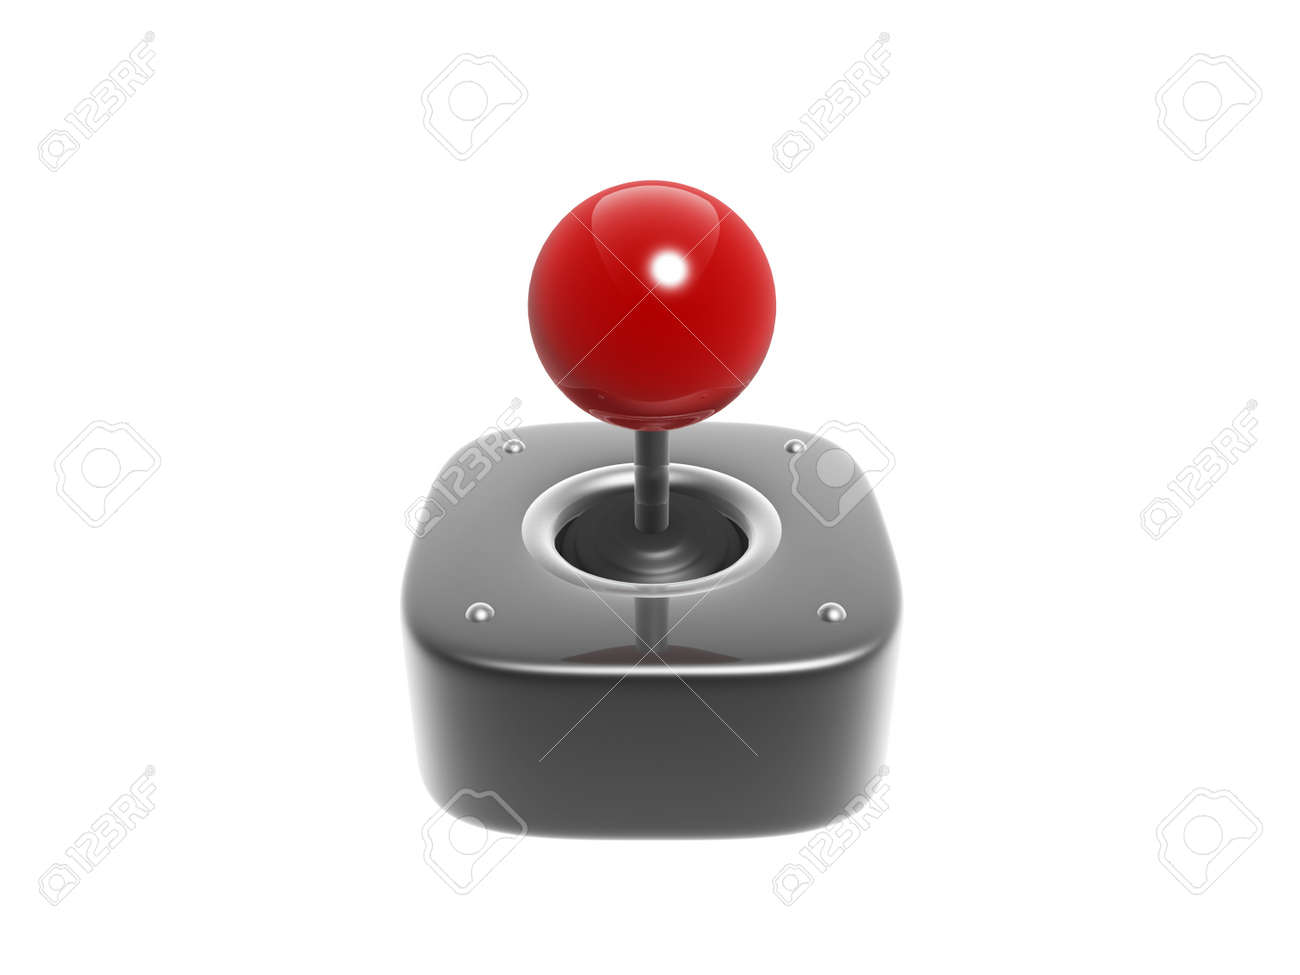 simple joystick game controller isolated on white background Stock Photo - 14186256